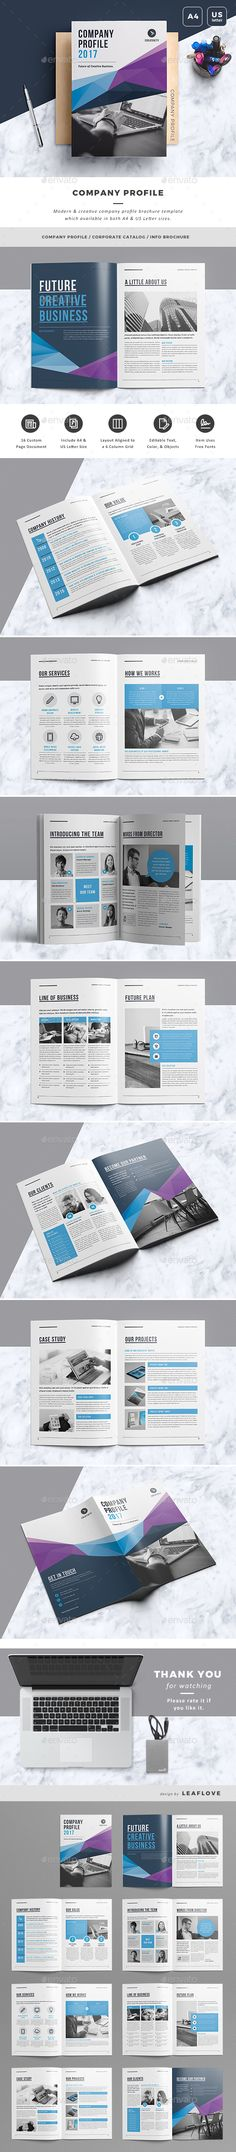 Clean and Professional Company Profile Brochure Template InDesign - professional business profile template